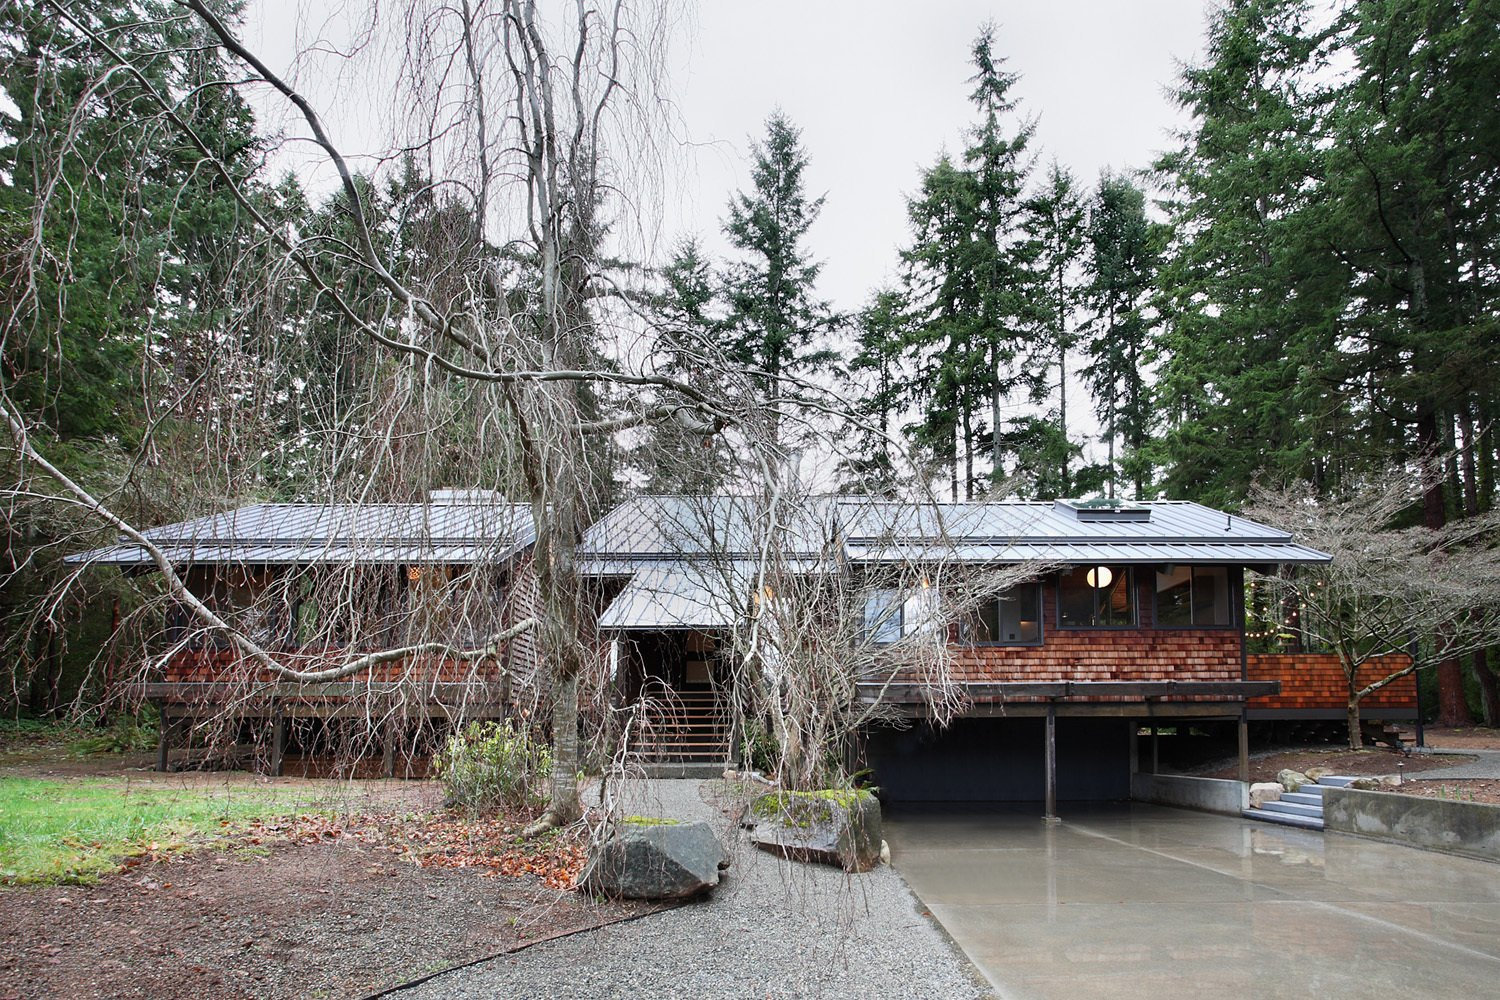 Nestled in a grove of Douglas fir trees, the house stands on series of wooden pylons in a Japanese-inspired fashion. Residents ascend the stairs, center, to reach its single floor. The exterior wooden shingles were intact and are original to the design.